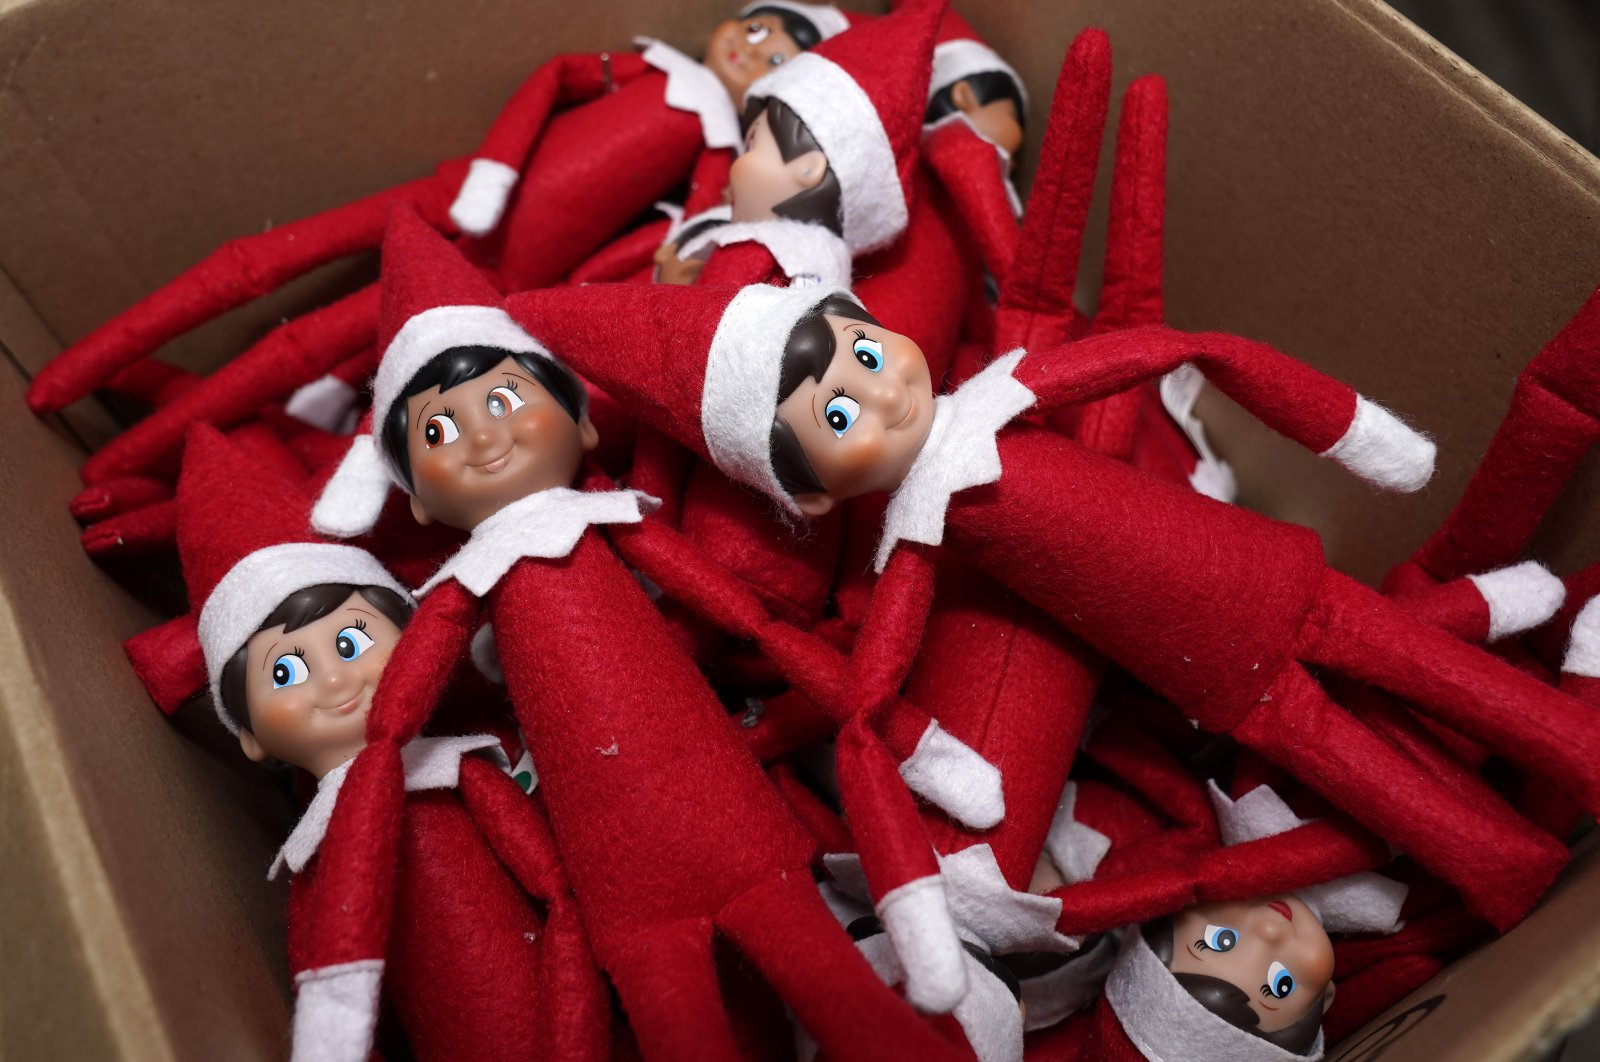 Elf on the Shelf figures are piled in a box at the Lumistella Company's studio in Atlanta, the U.S., Aug. 27, 2020. (AP Photo)